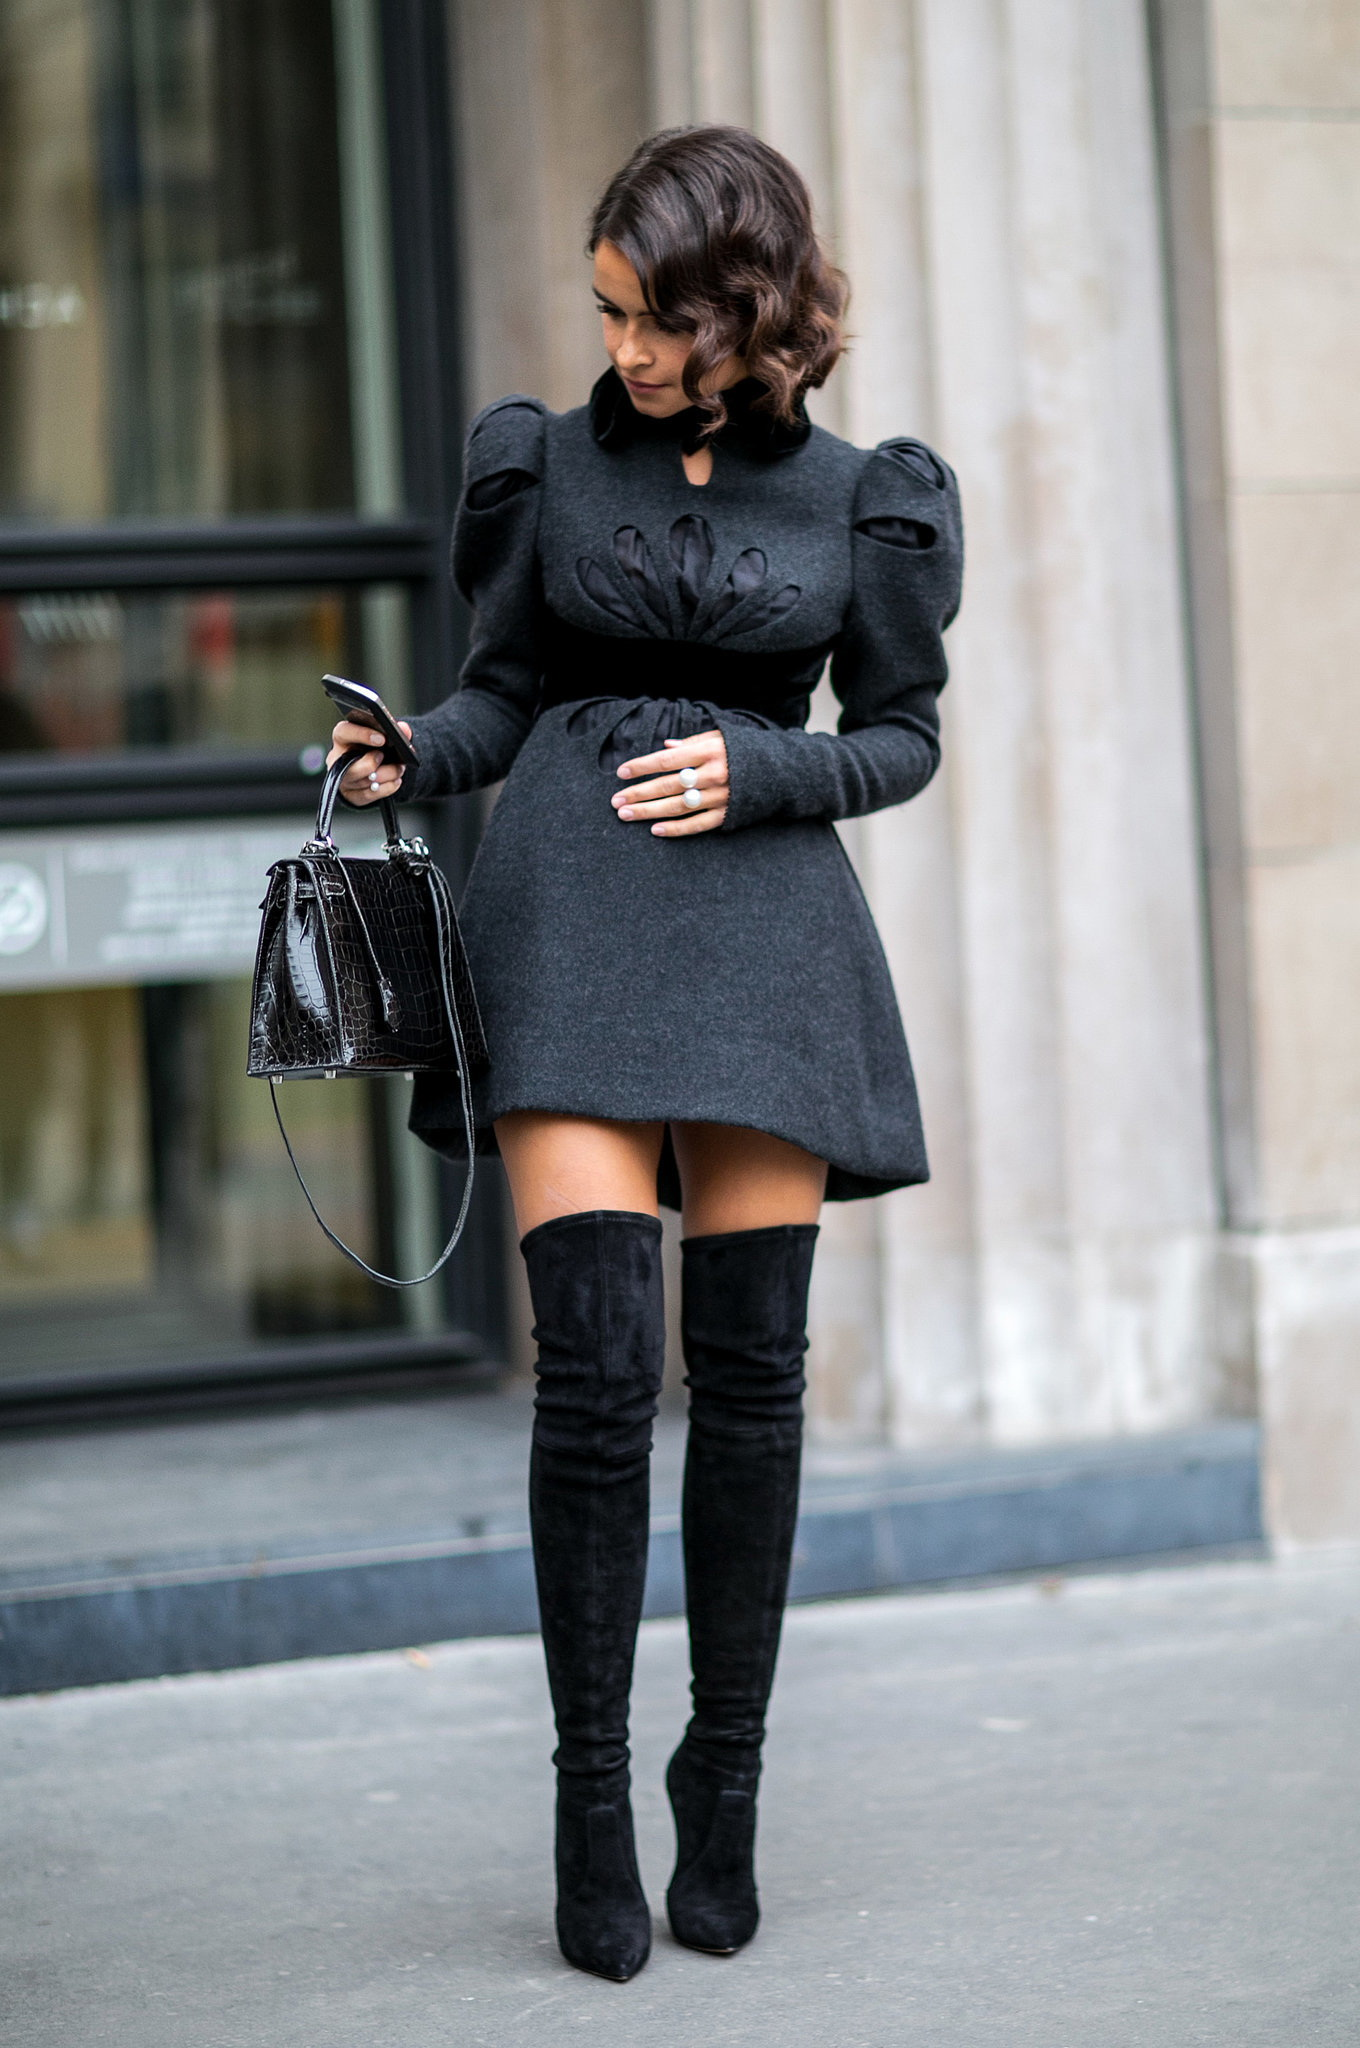 thigh-high-boots-outfit-ideas-13